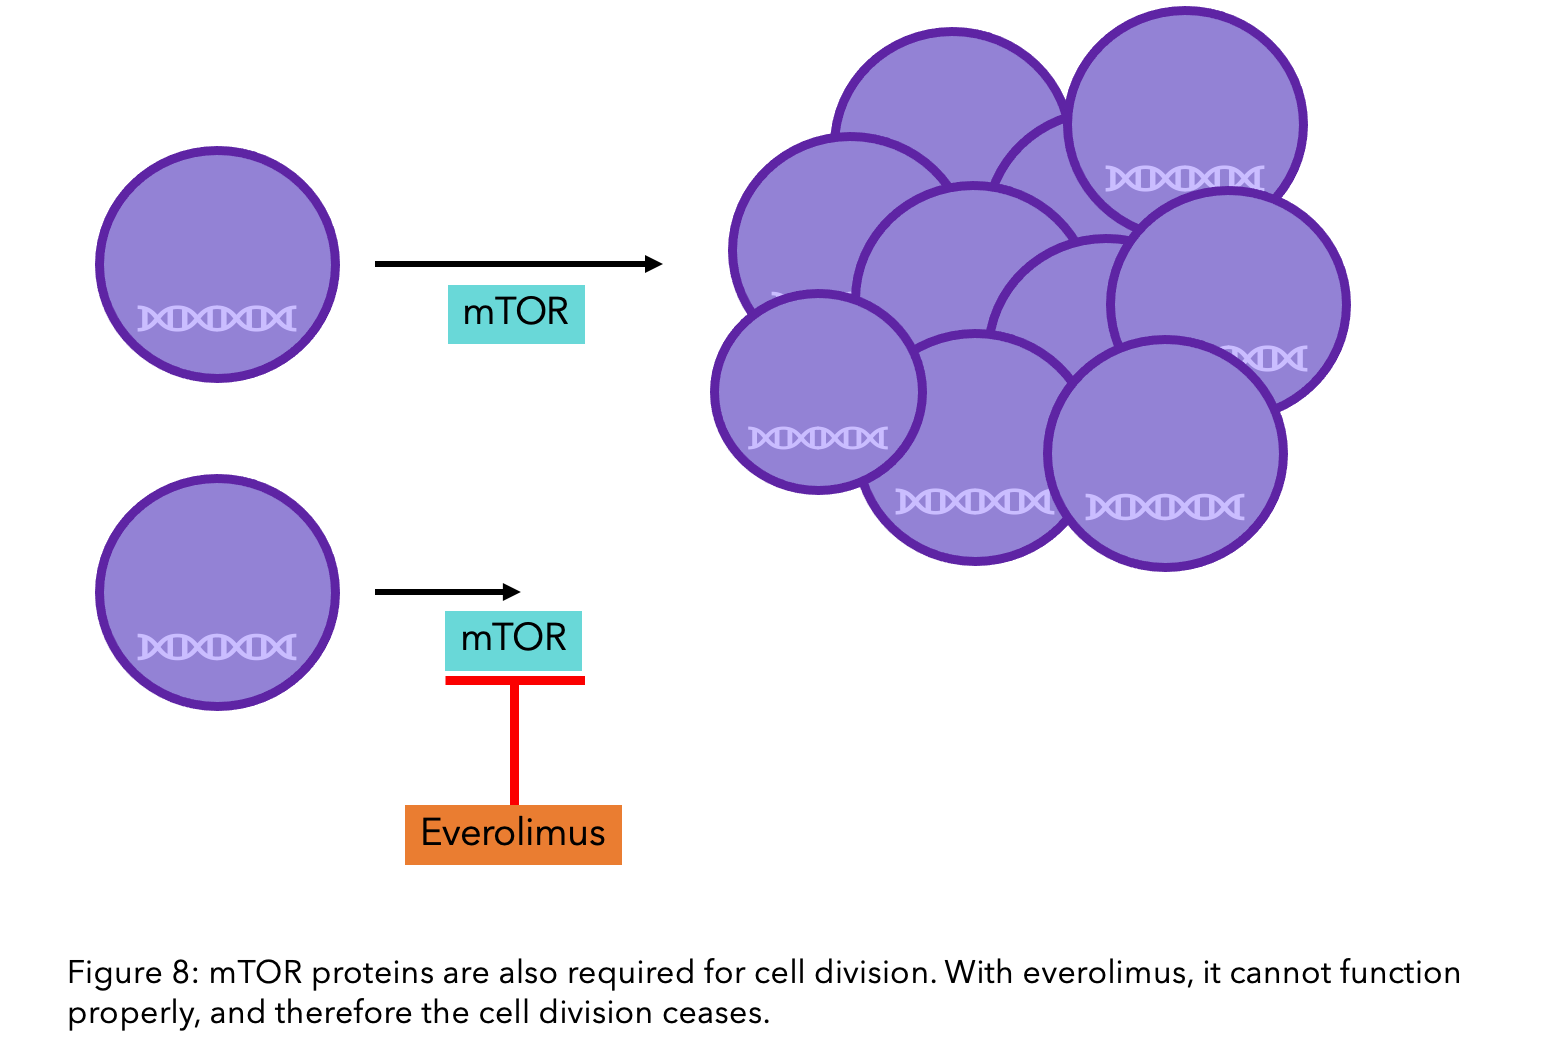 A figure to show how mTOR proteins are required for cell division and how everolimus ceases this function.